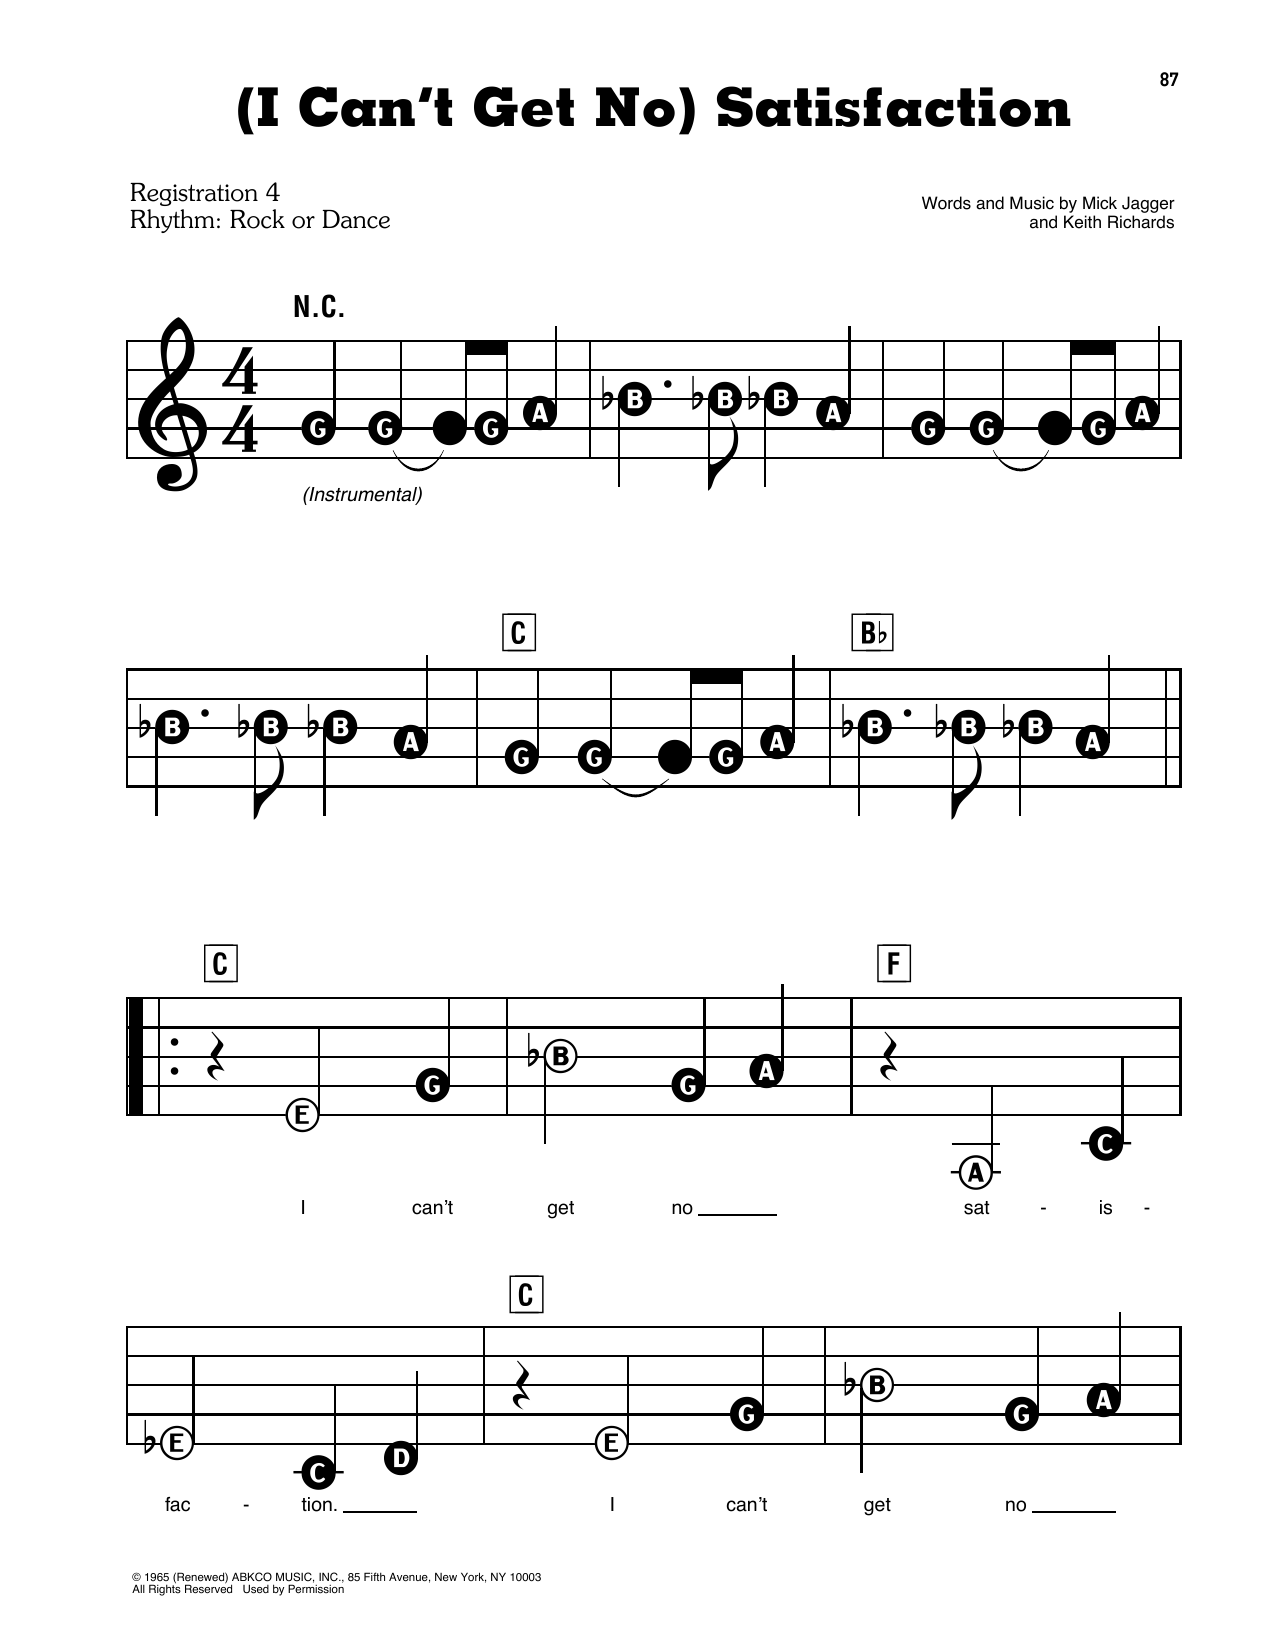 (I Can't Get No) Satisfaction Sheet Music